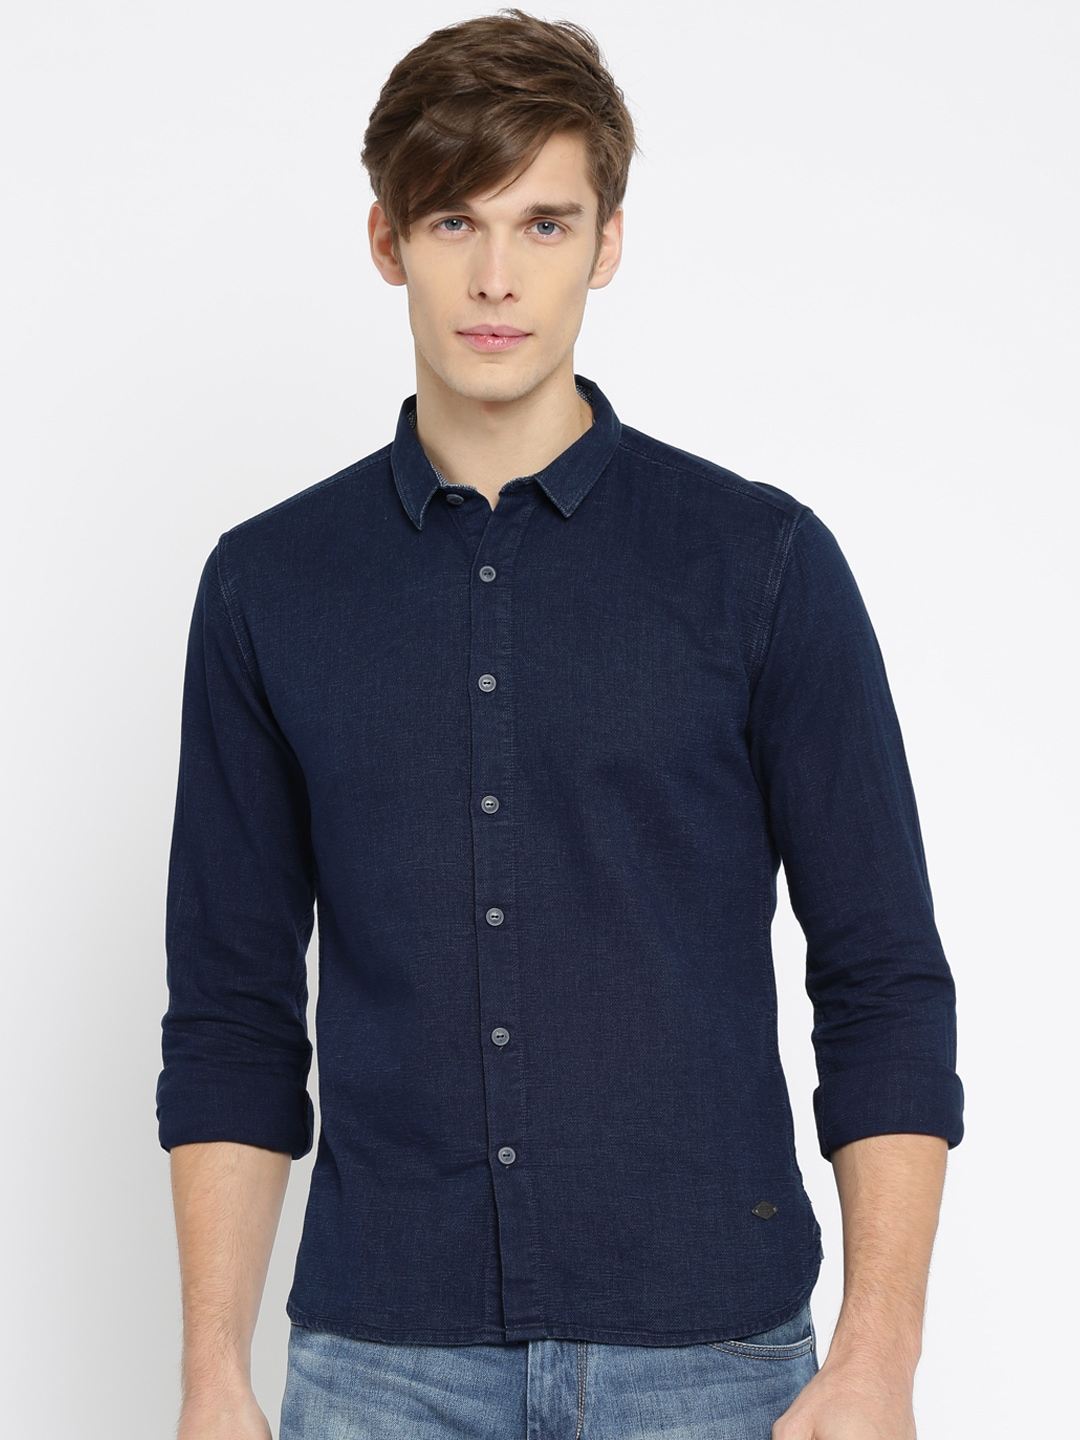 dcdfc2710a Voi Jeans - Buy Voi Jeans Online in India